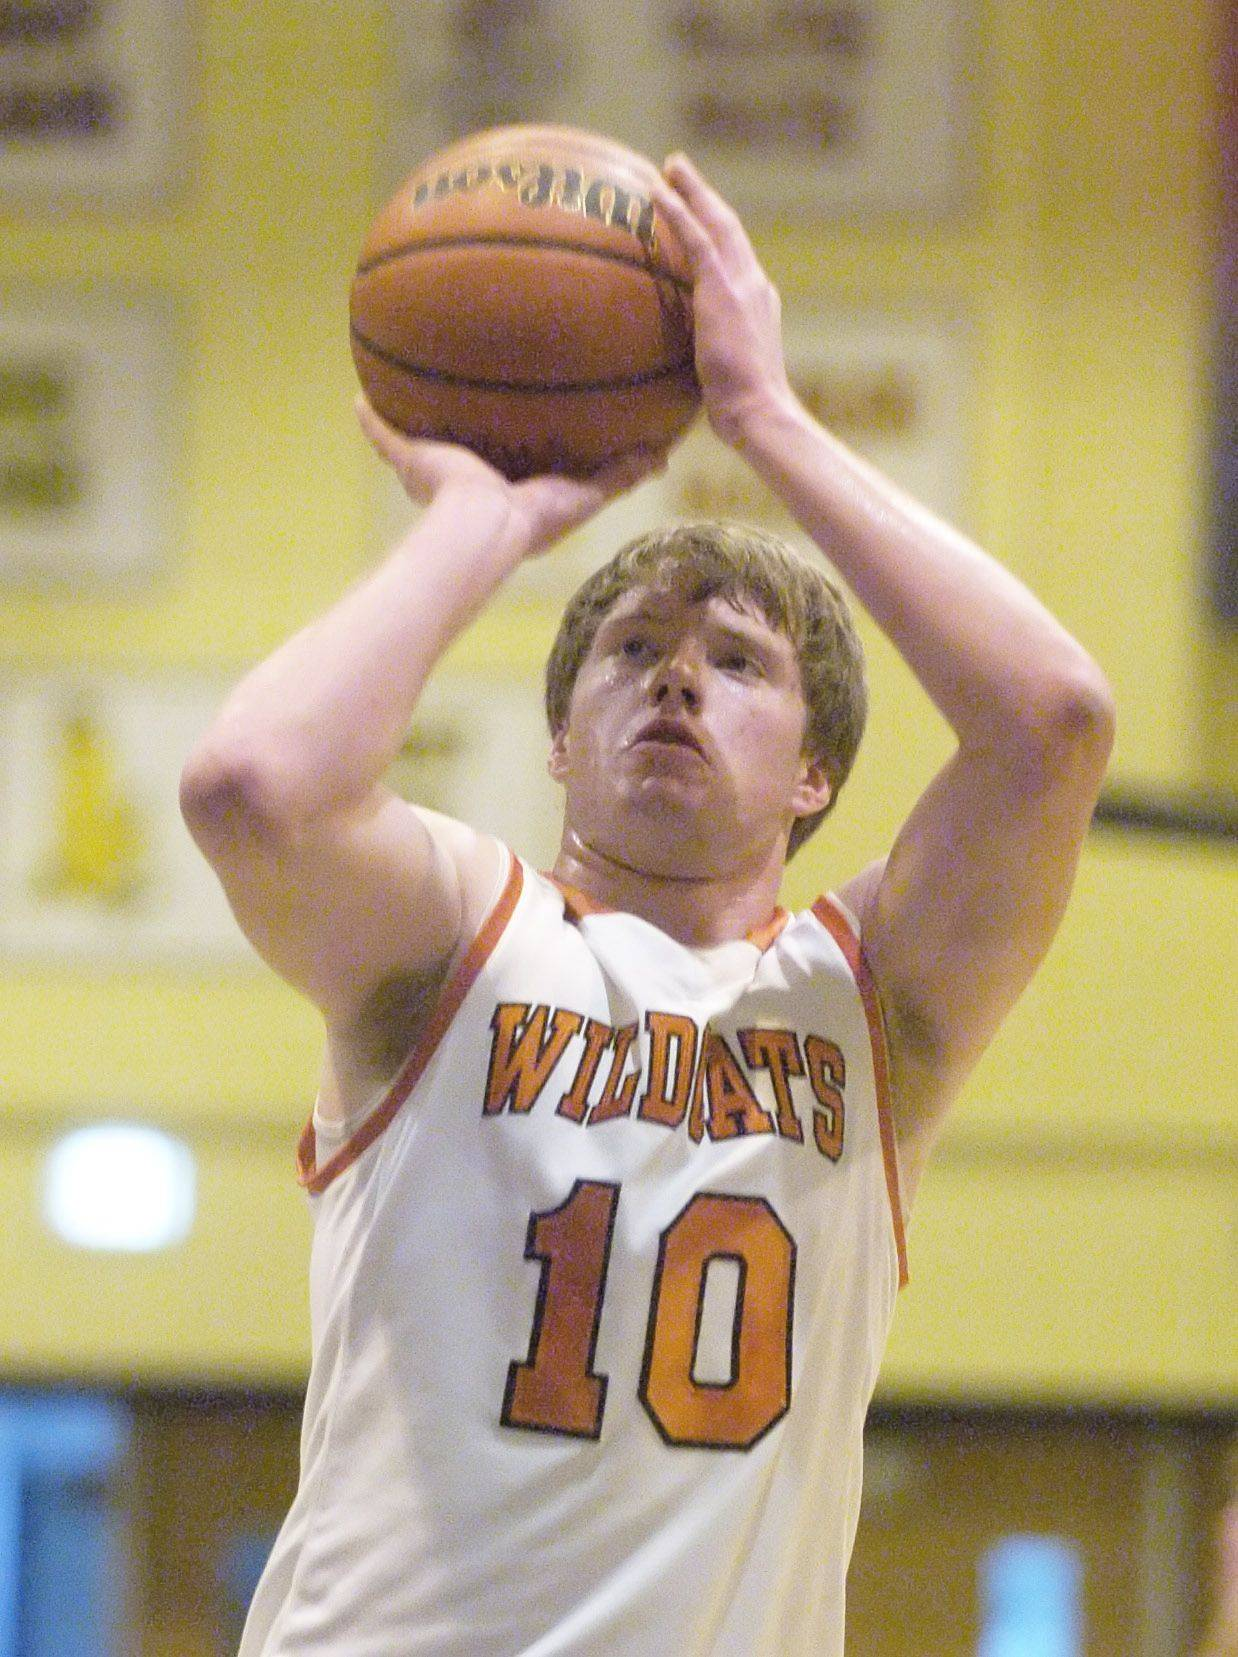 Images from the Libertyville vs. Notre Dame boys basketball game Wednesday, December 29, 2010.